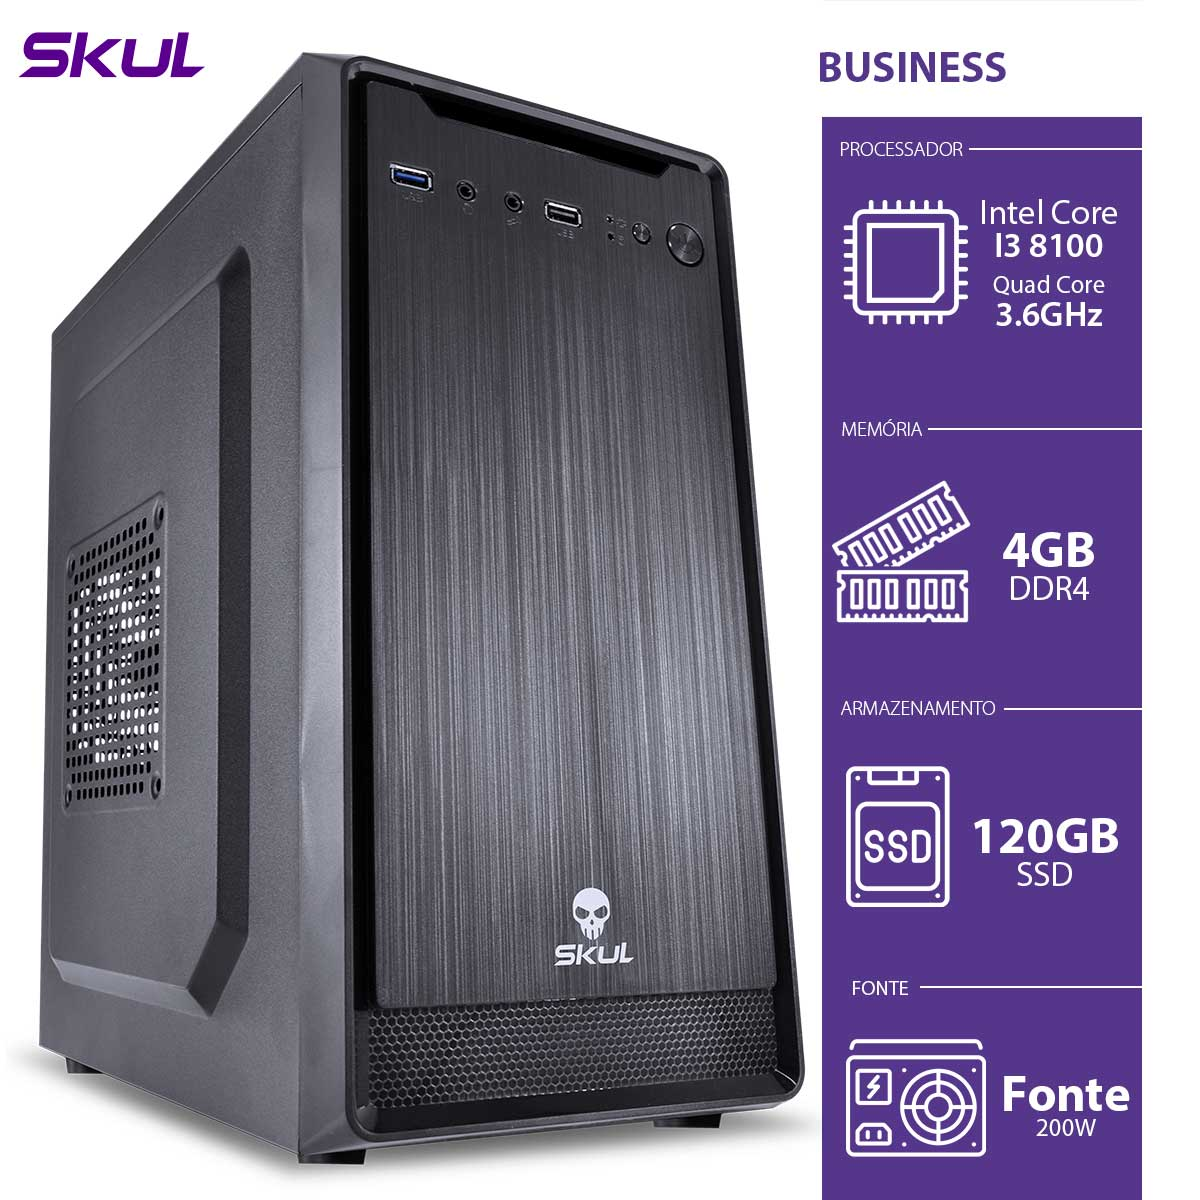 Computador Business B300 - I3-8100 3.6GHZ 4GB DDR4 SSD 120GB HDMI/VGA Fonte 200W